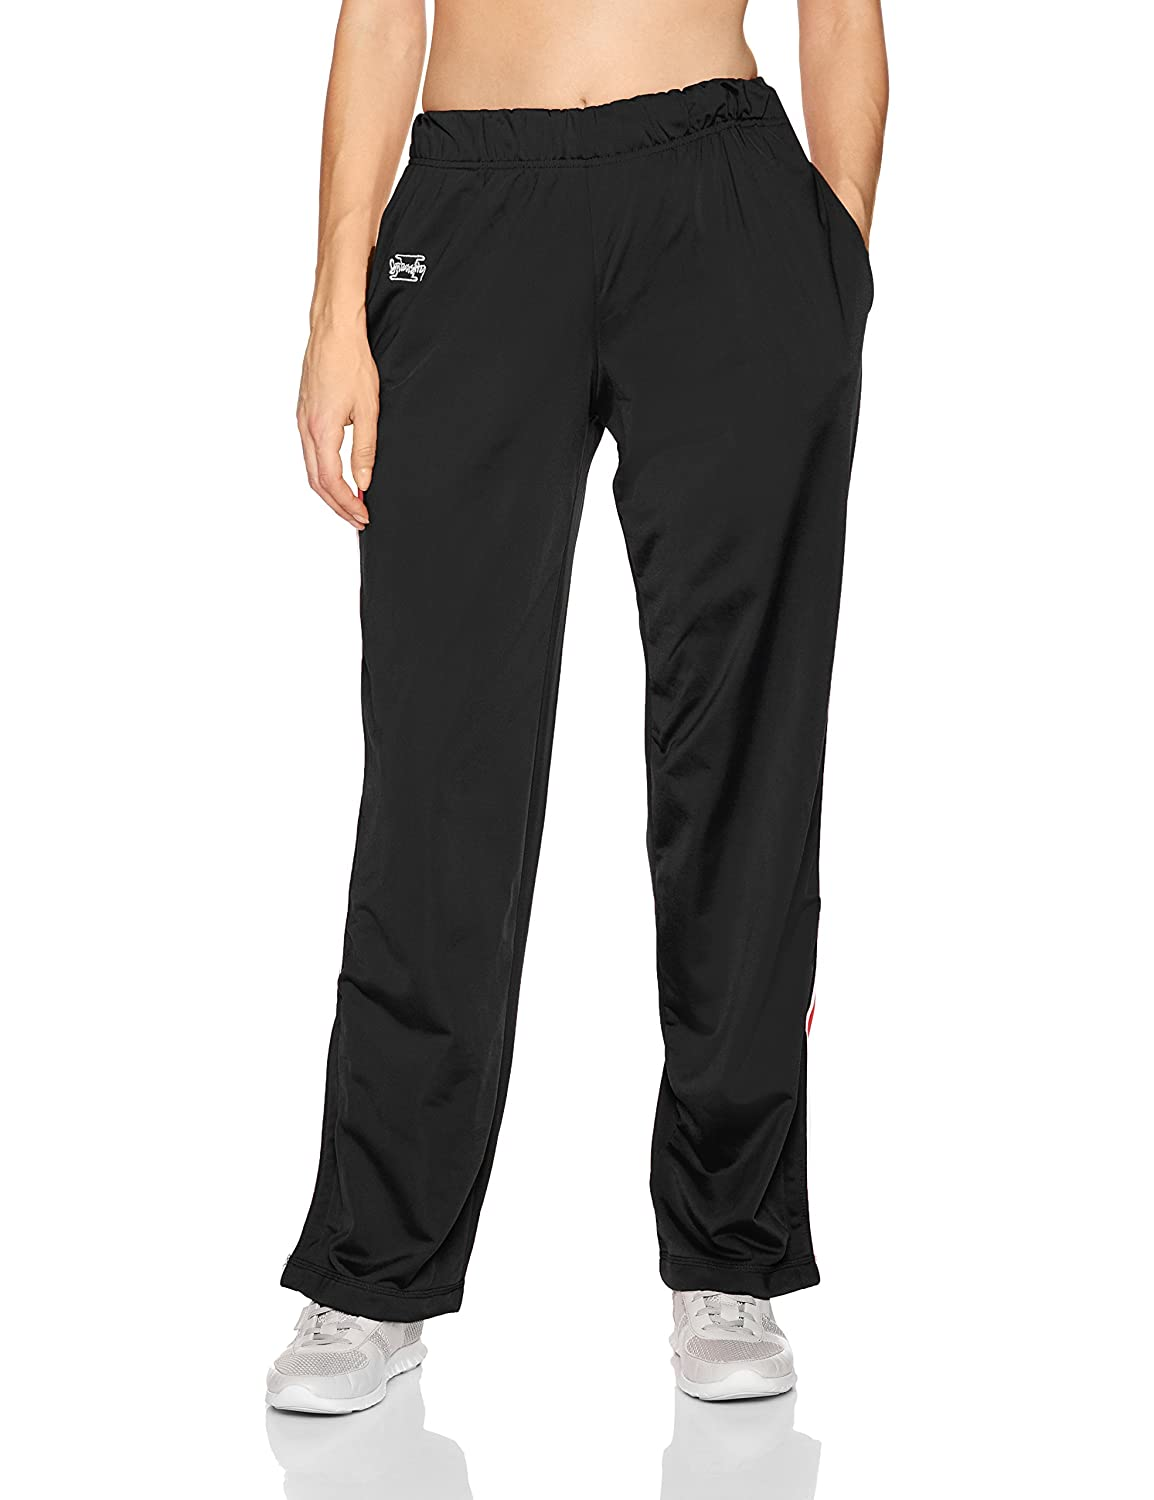 e7b7301e95 Intensity Women's Brushed Tricot Warmup Pant